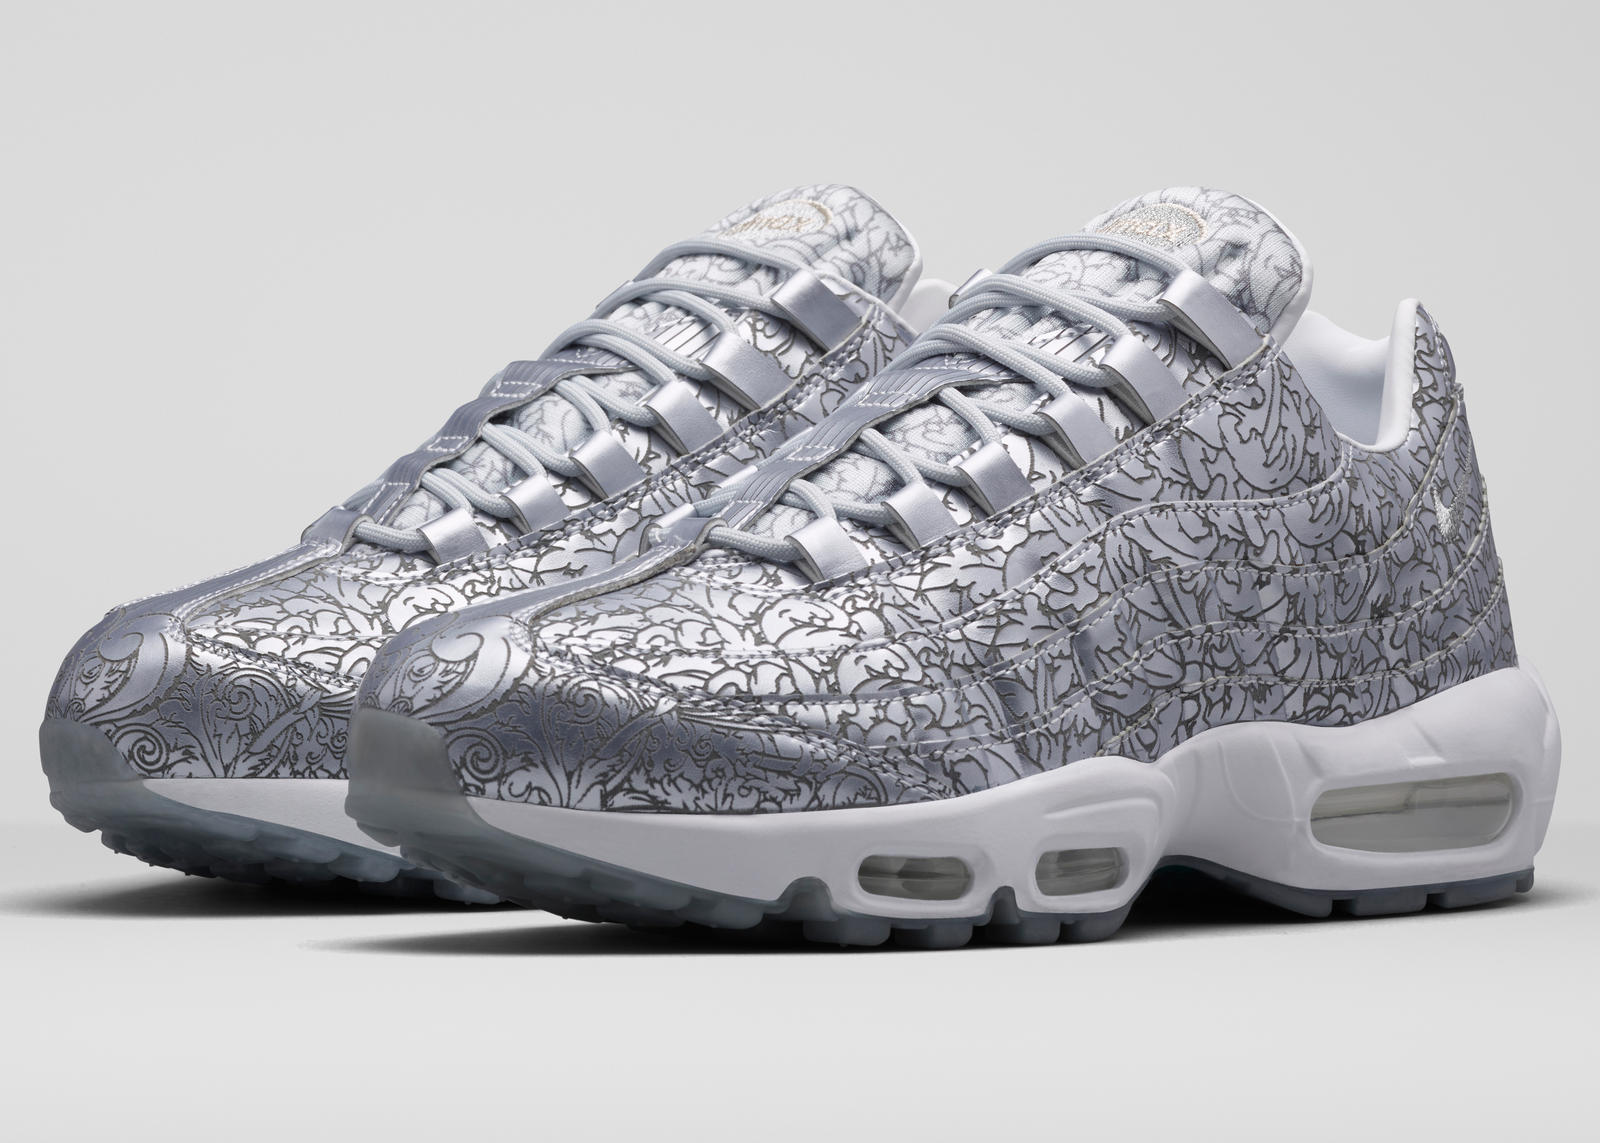 buy nike air max 2015 women's silver anniversary team members